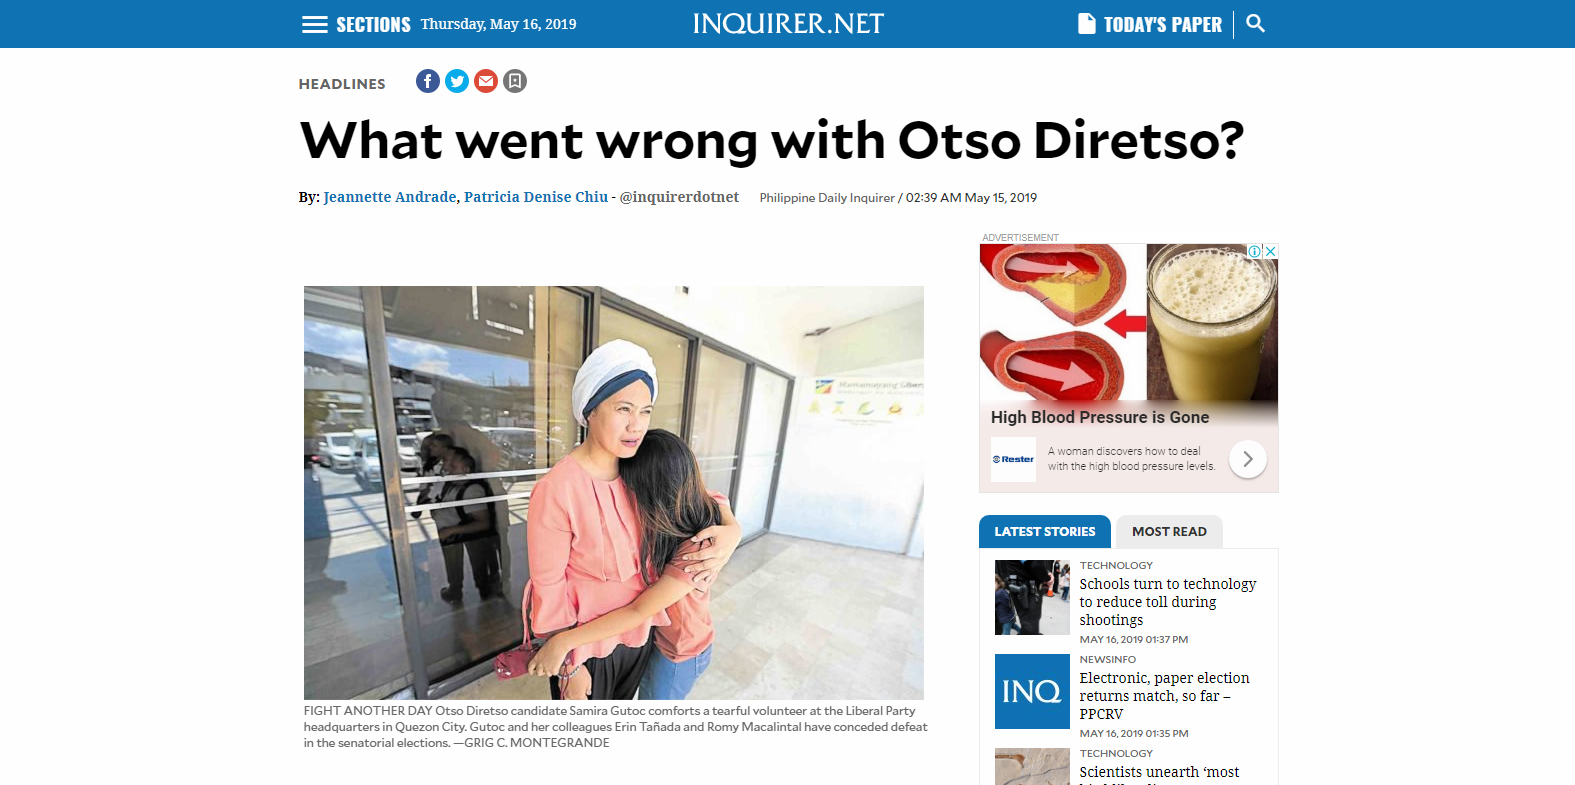 What went wrong with Otso Diresto?